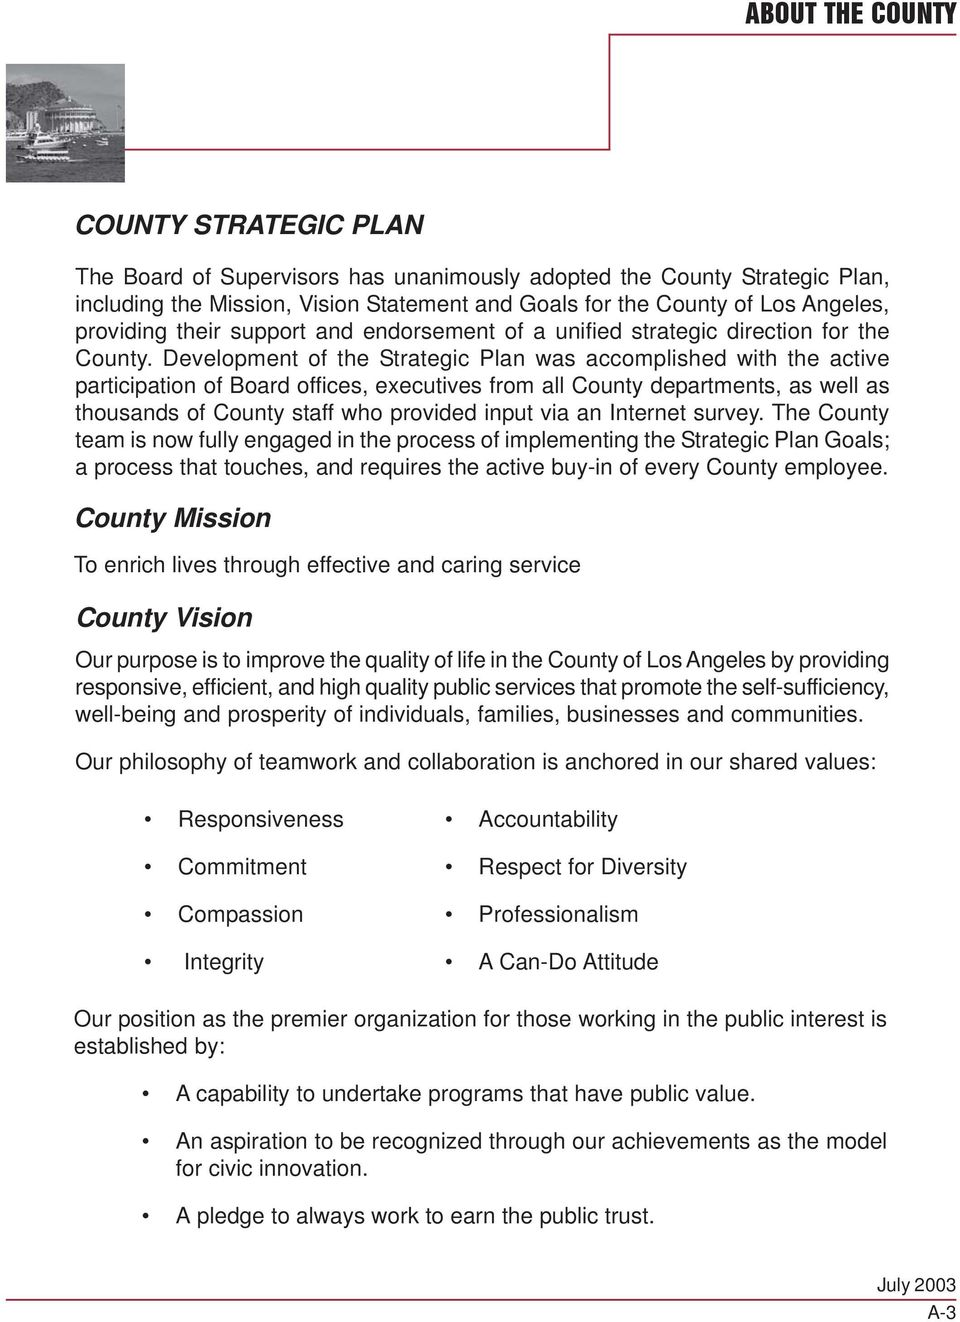 Development of the Strategic Plan was accomplished with the active participation of Board offices, executives from all County departments, as well as thousands of County staff who provided input via